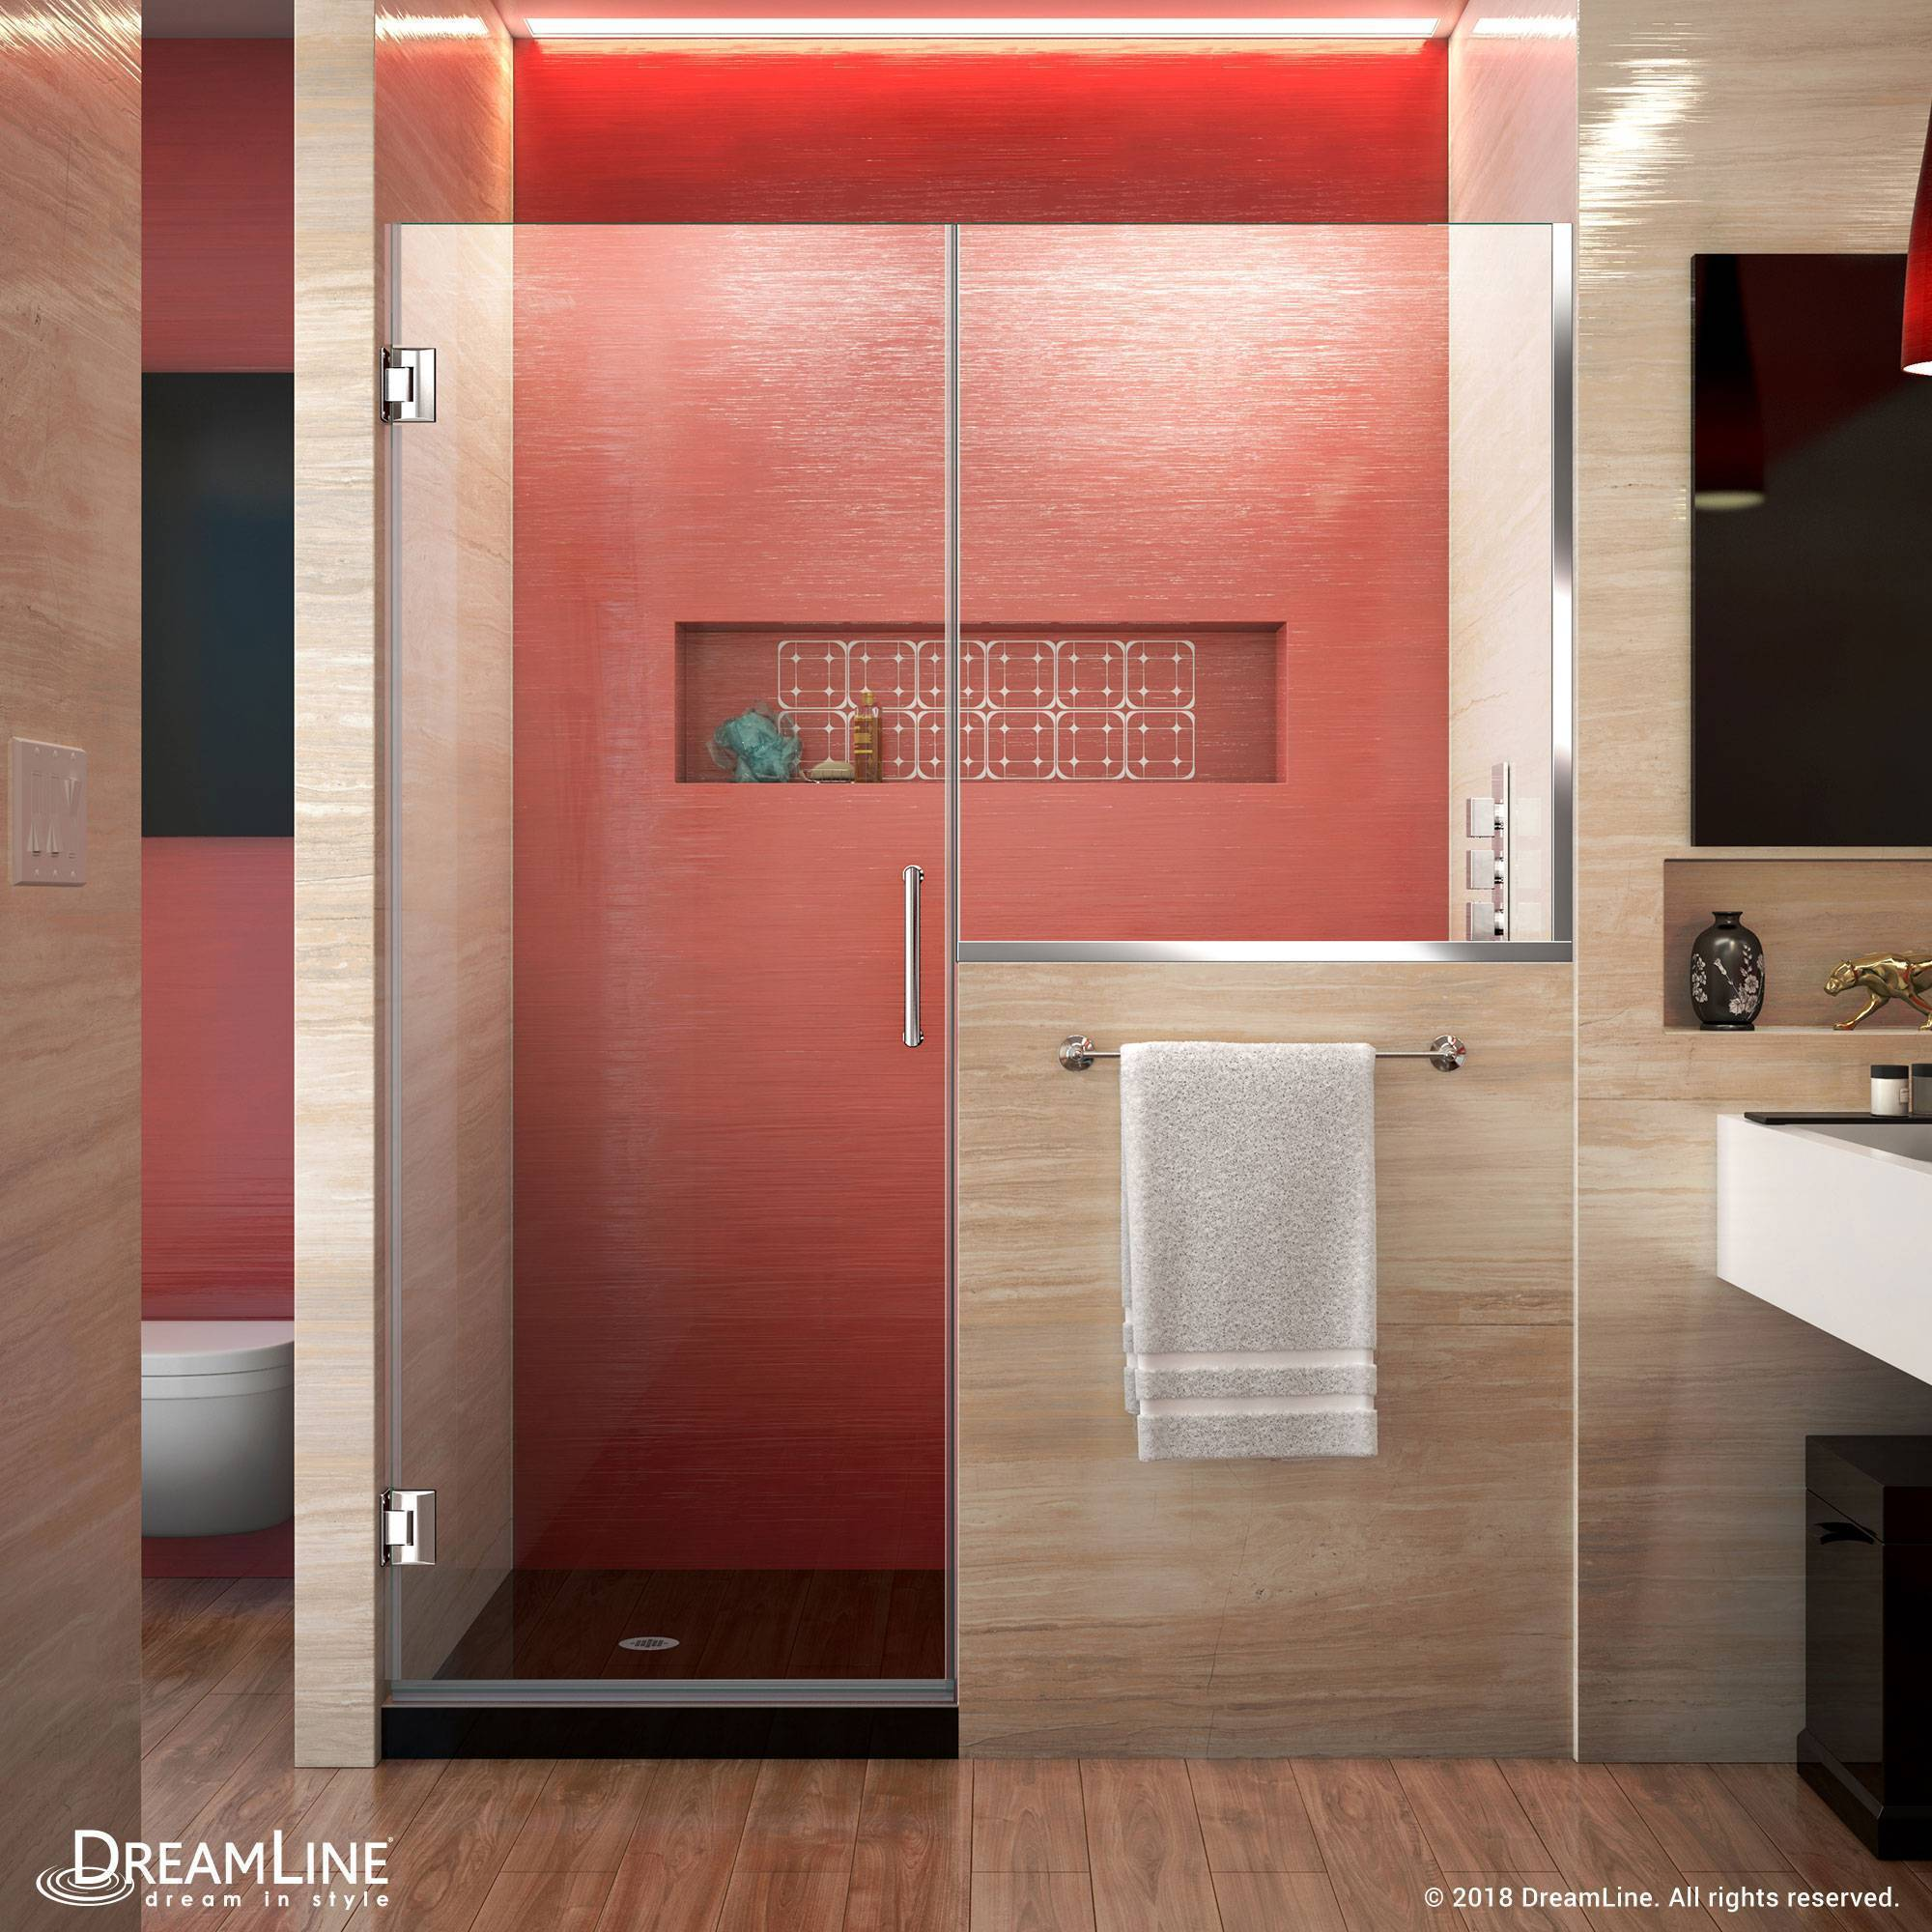 DreamLine Unidoor Plus Hinged Shower Door with buttress panel